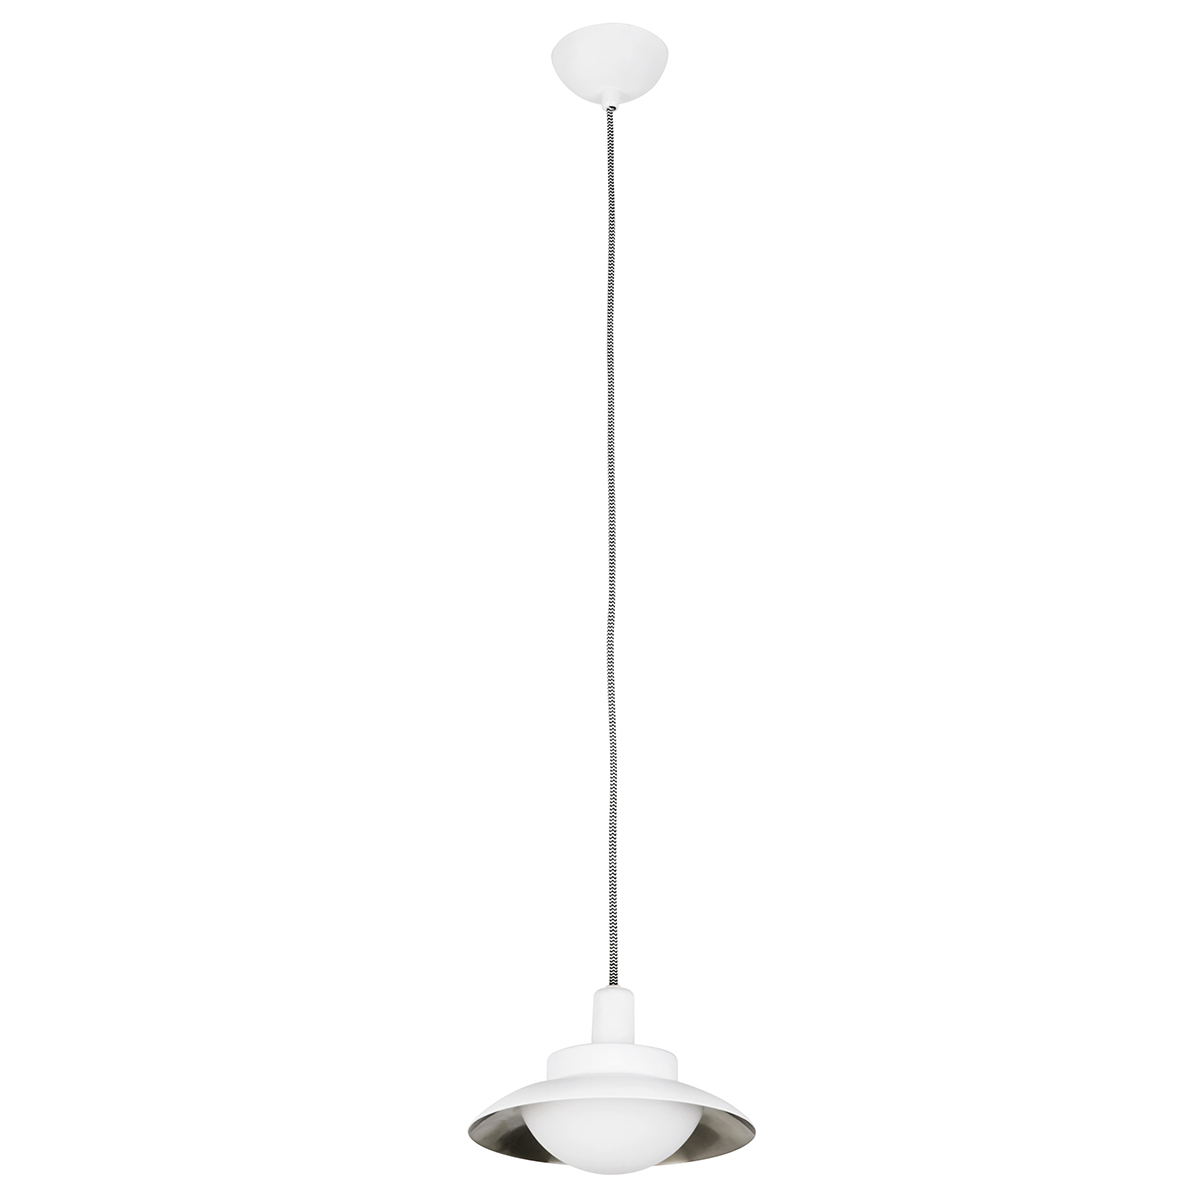 Pendul LED modern SIDE alb/nickel 62137 Faro Barcelona